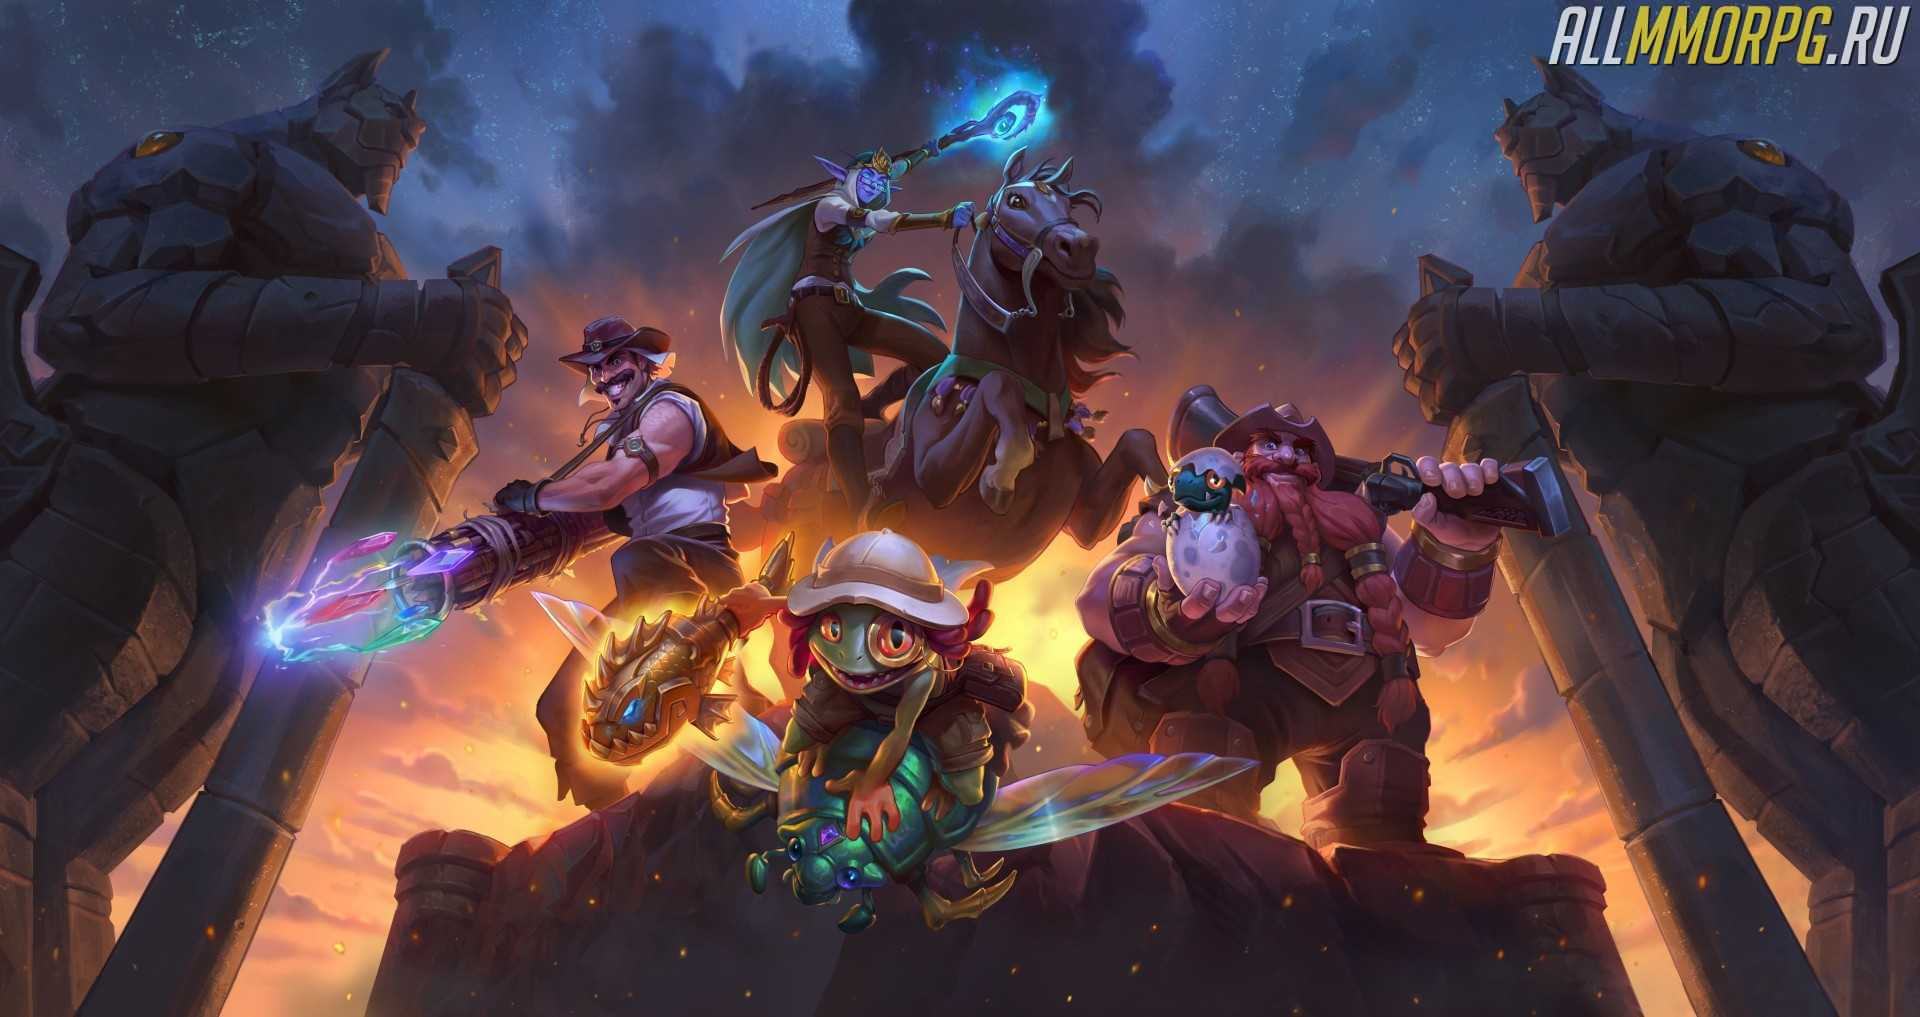 https://www.allmmorpg.ru/wp-content/uploads/2019/08/hearthstone-saviors-of-uldum-expansion-14.jpg